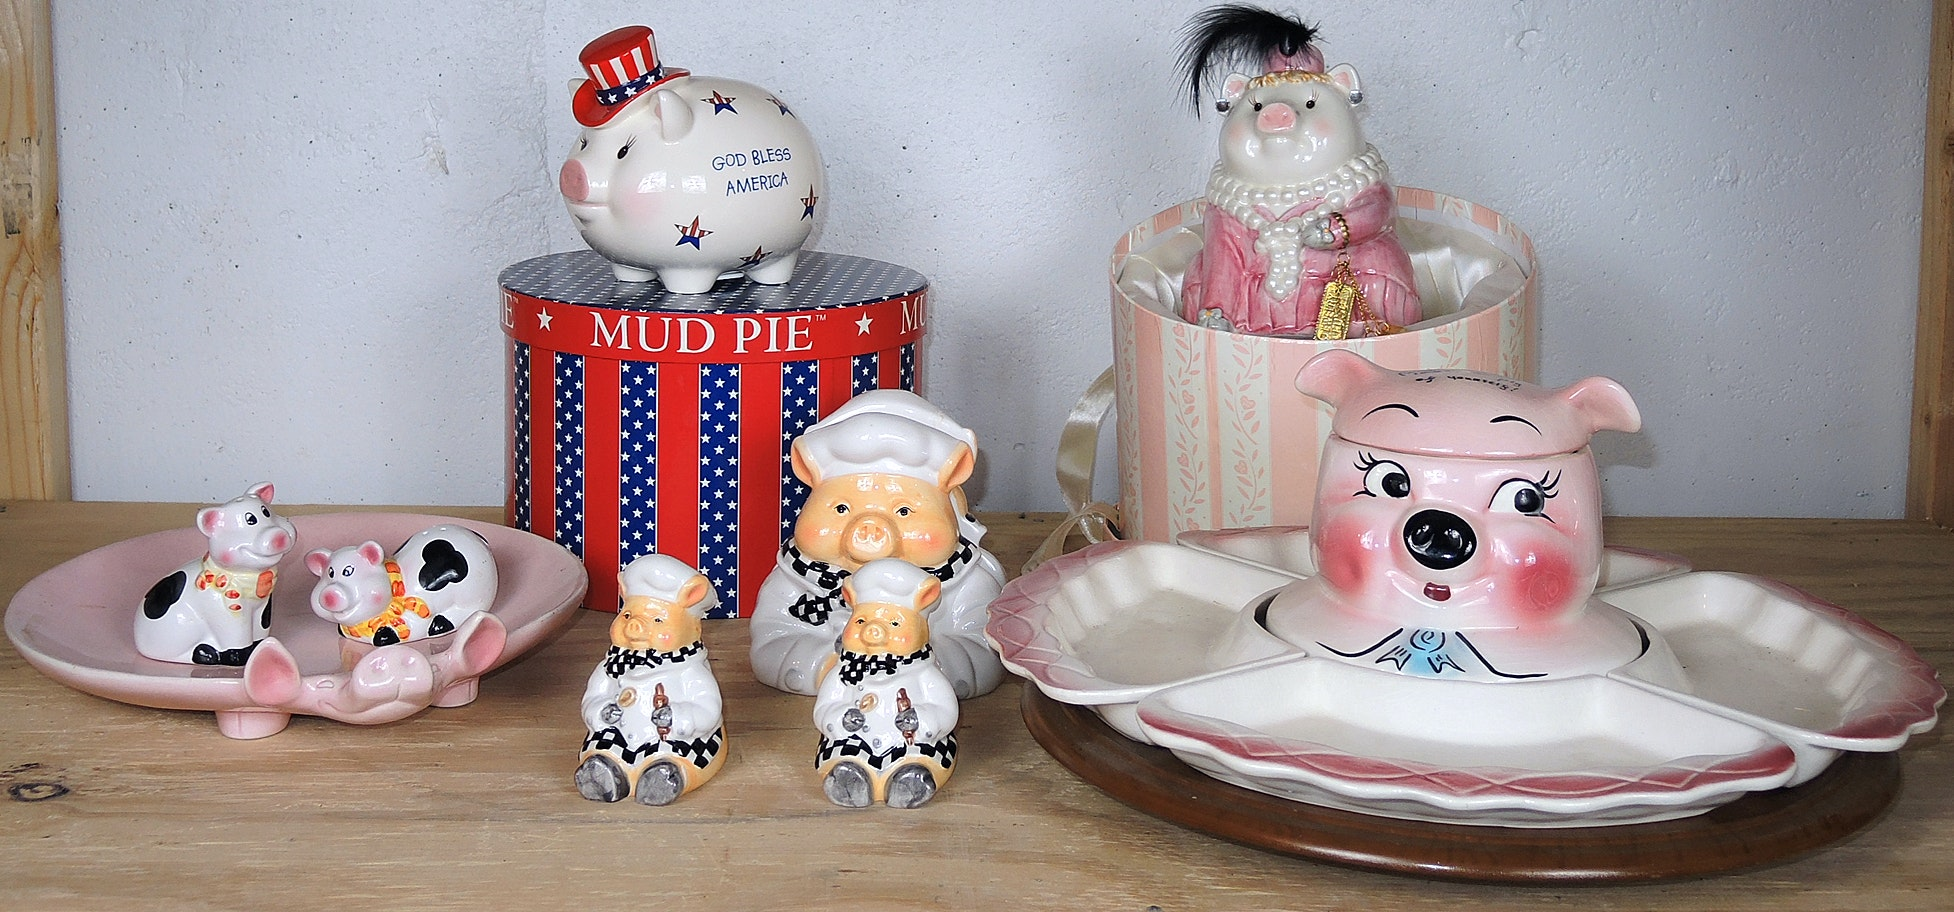 California Pottery Pink Pig Server with Piggy Banks, Salt and Pepper